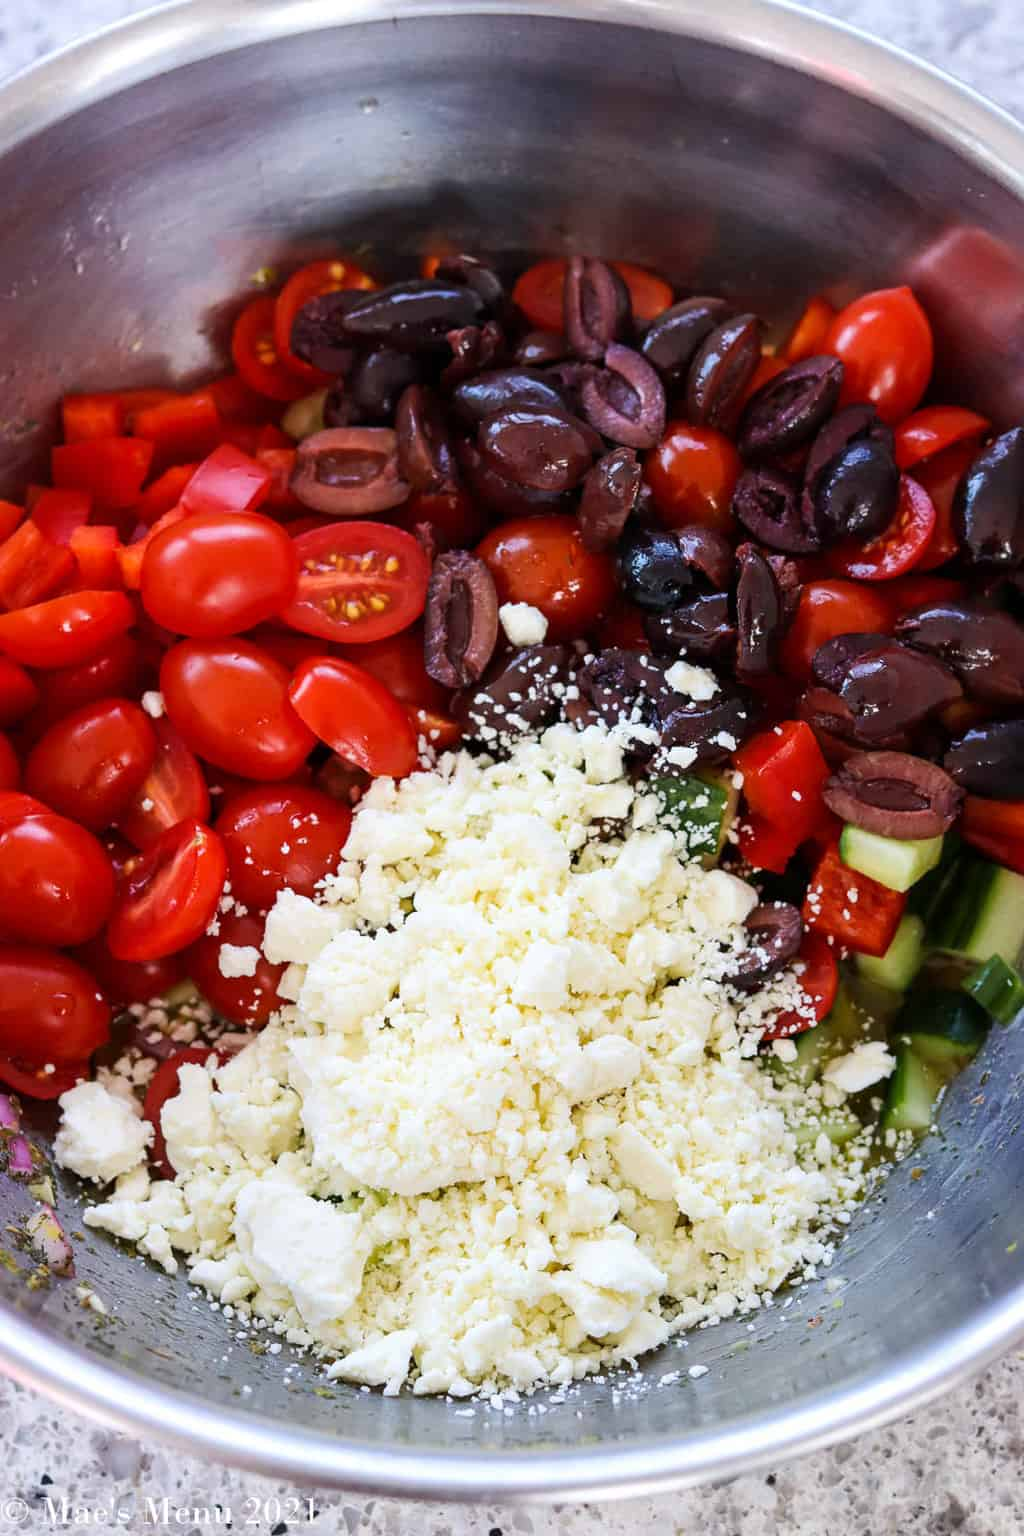 A large mixing bowl with cherry tomatoes, olives, and feta cheese